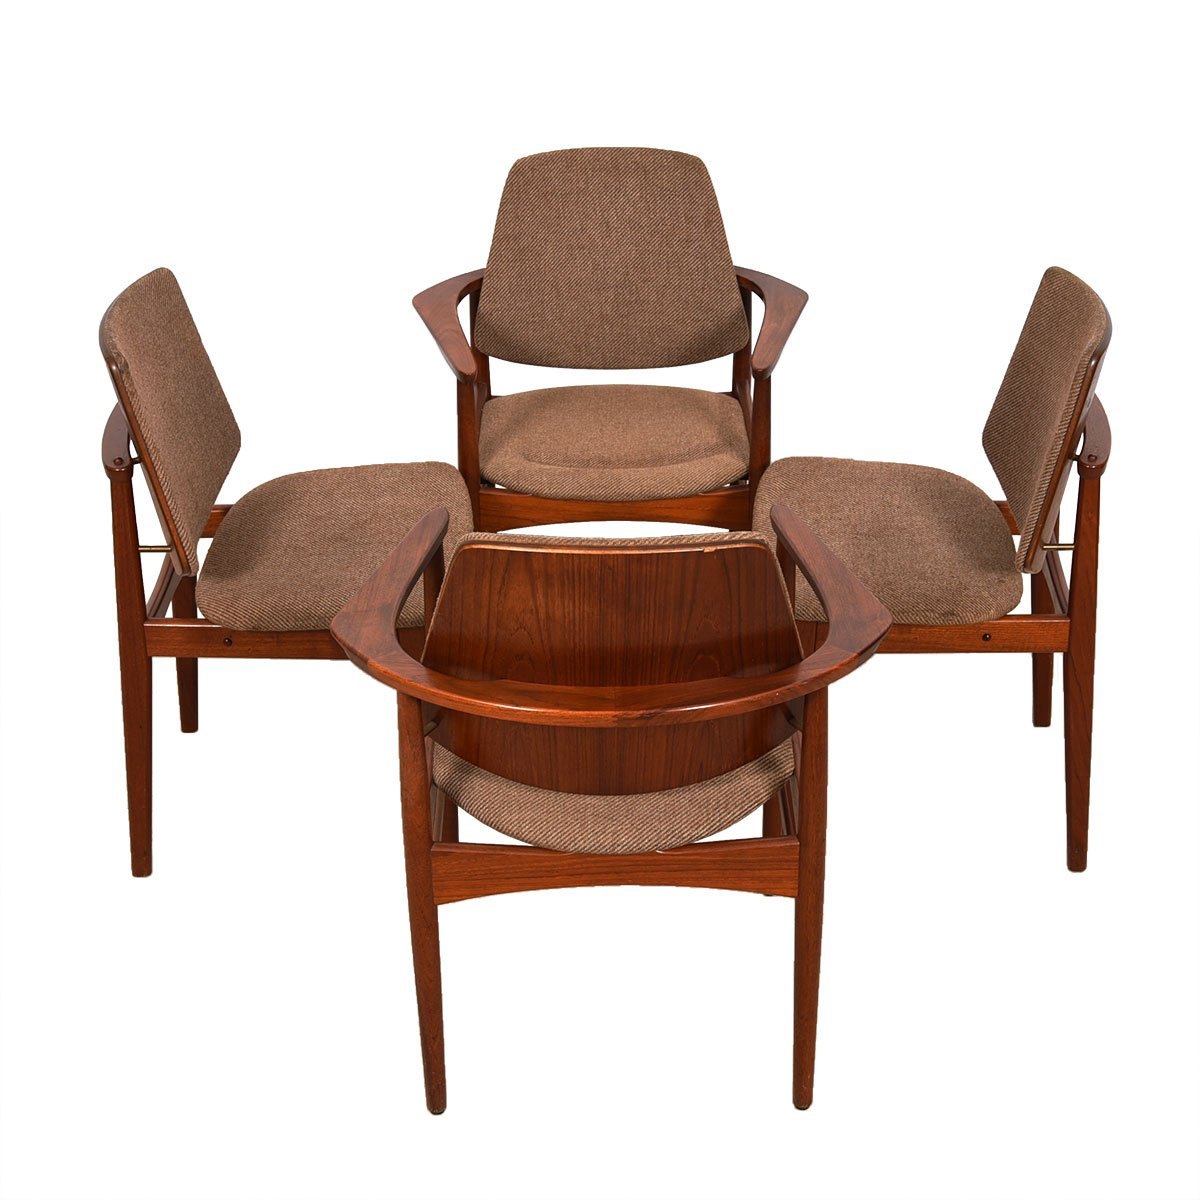 Set of 4 Danish Teak Arne Hovmand-Olsen Dining Chairs 2 Arm / 2 Side